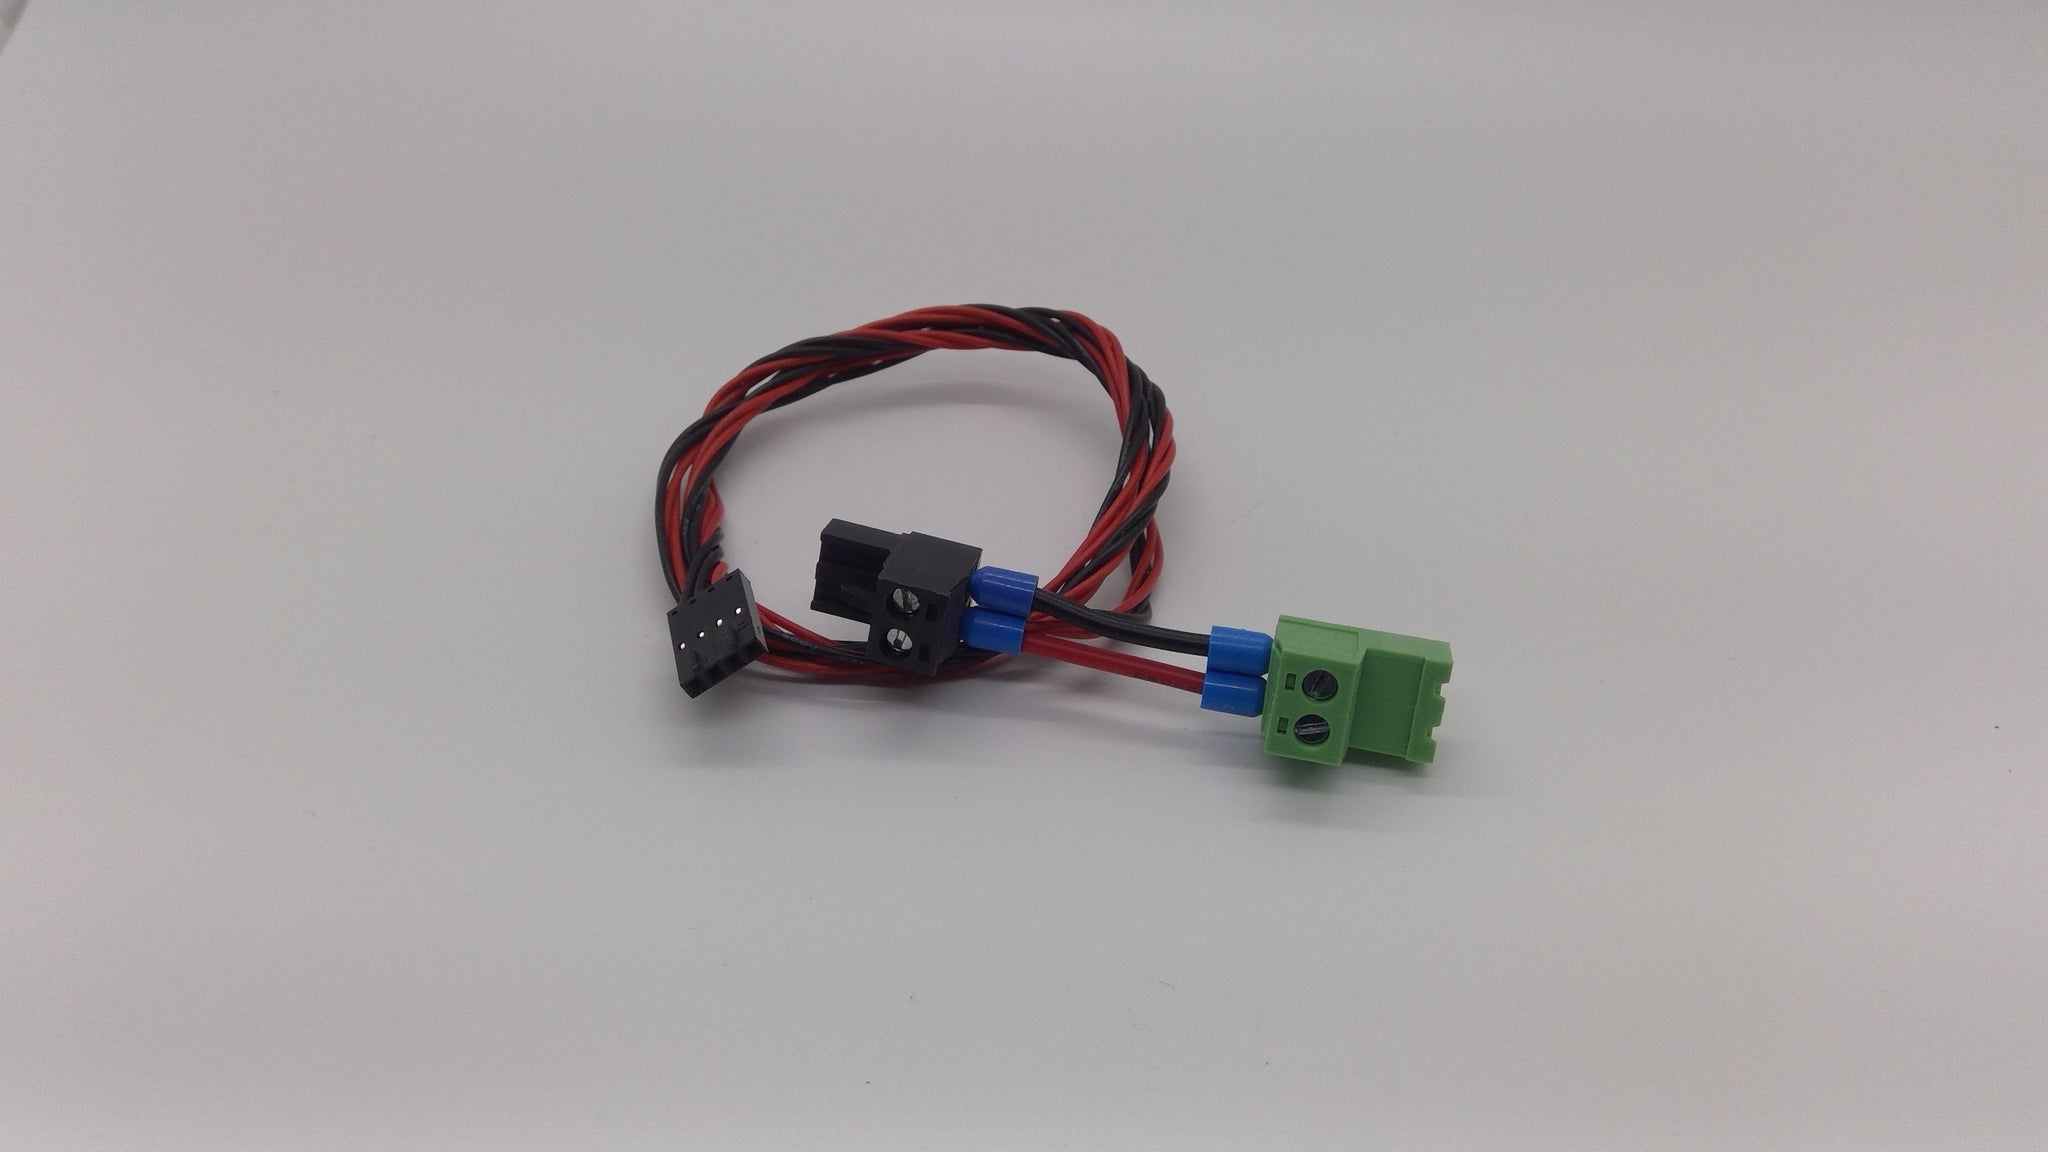 MMU2 Power cable for Rambo board